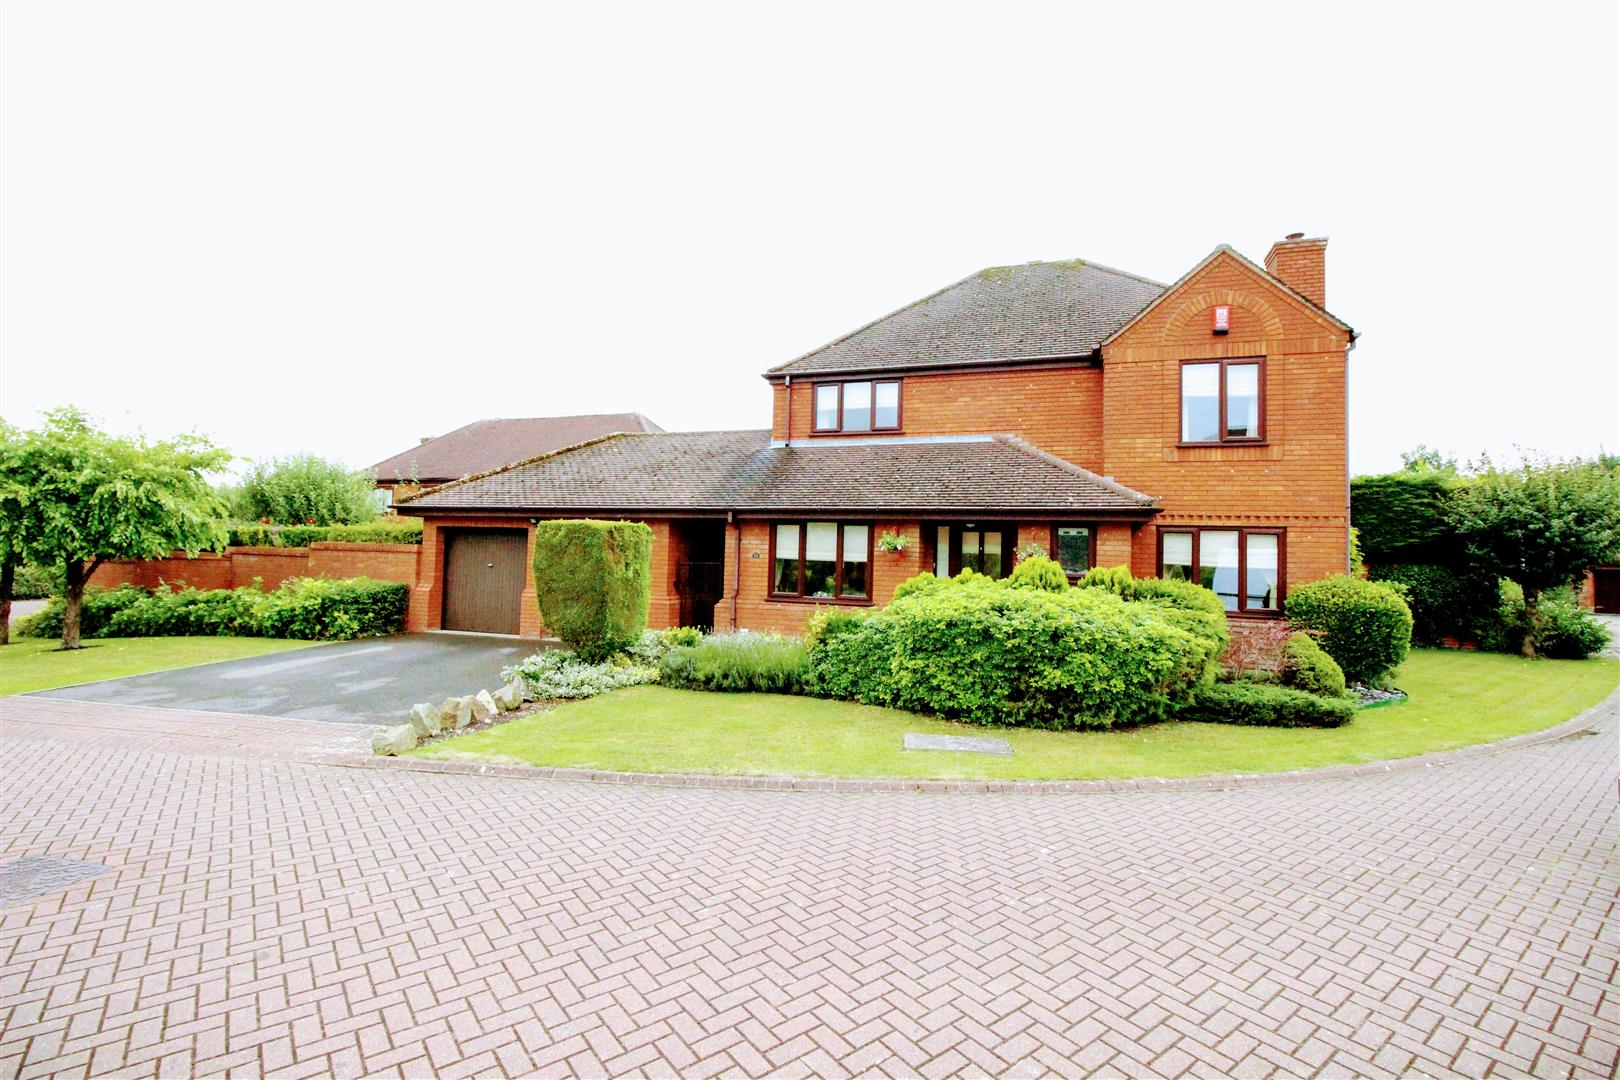 4 Bedrooms Detached House for sale in The Bramptons, Shaw, Swindon